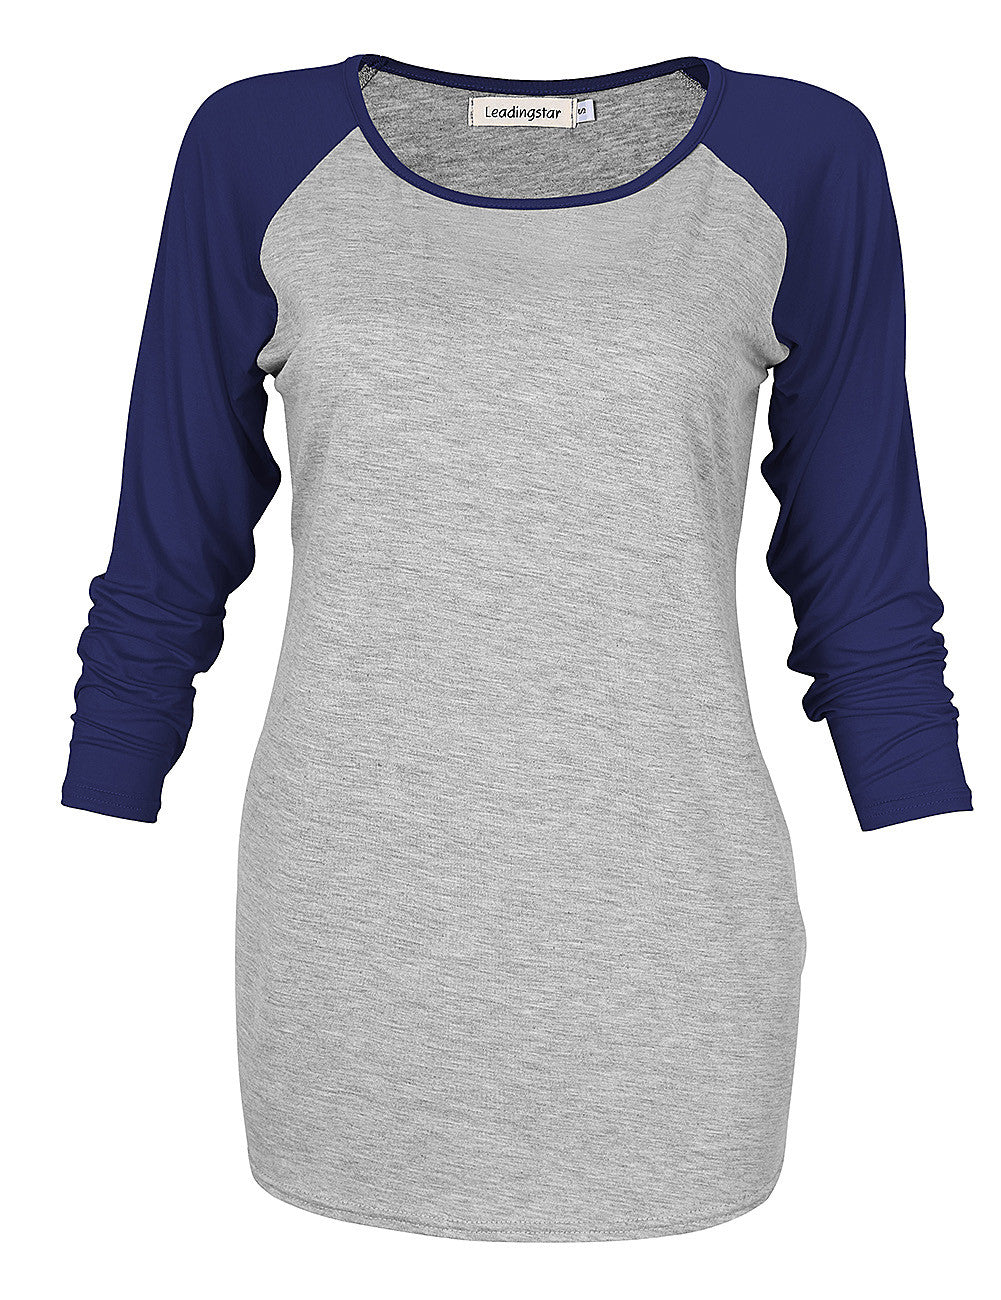 Womens 3/4 Sleeves T Shirts Juniors Tees Round Neck Collision Color Top